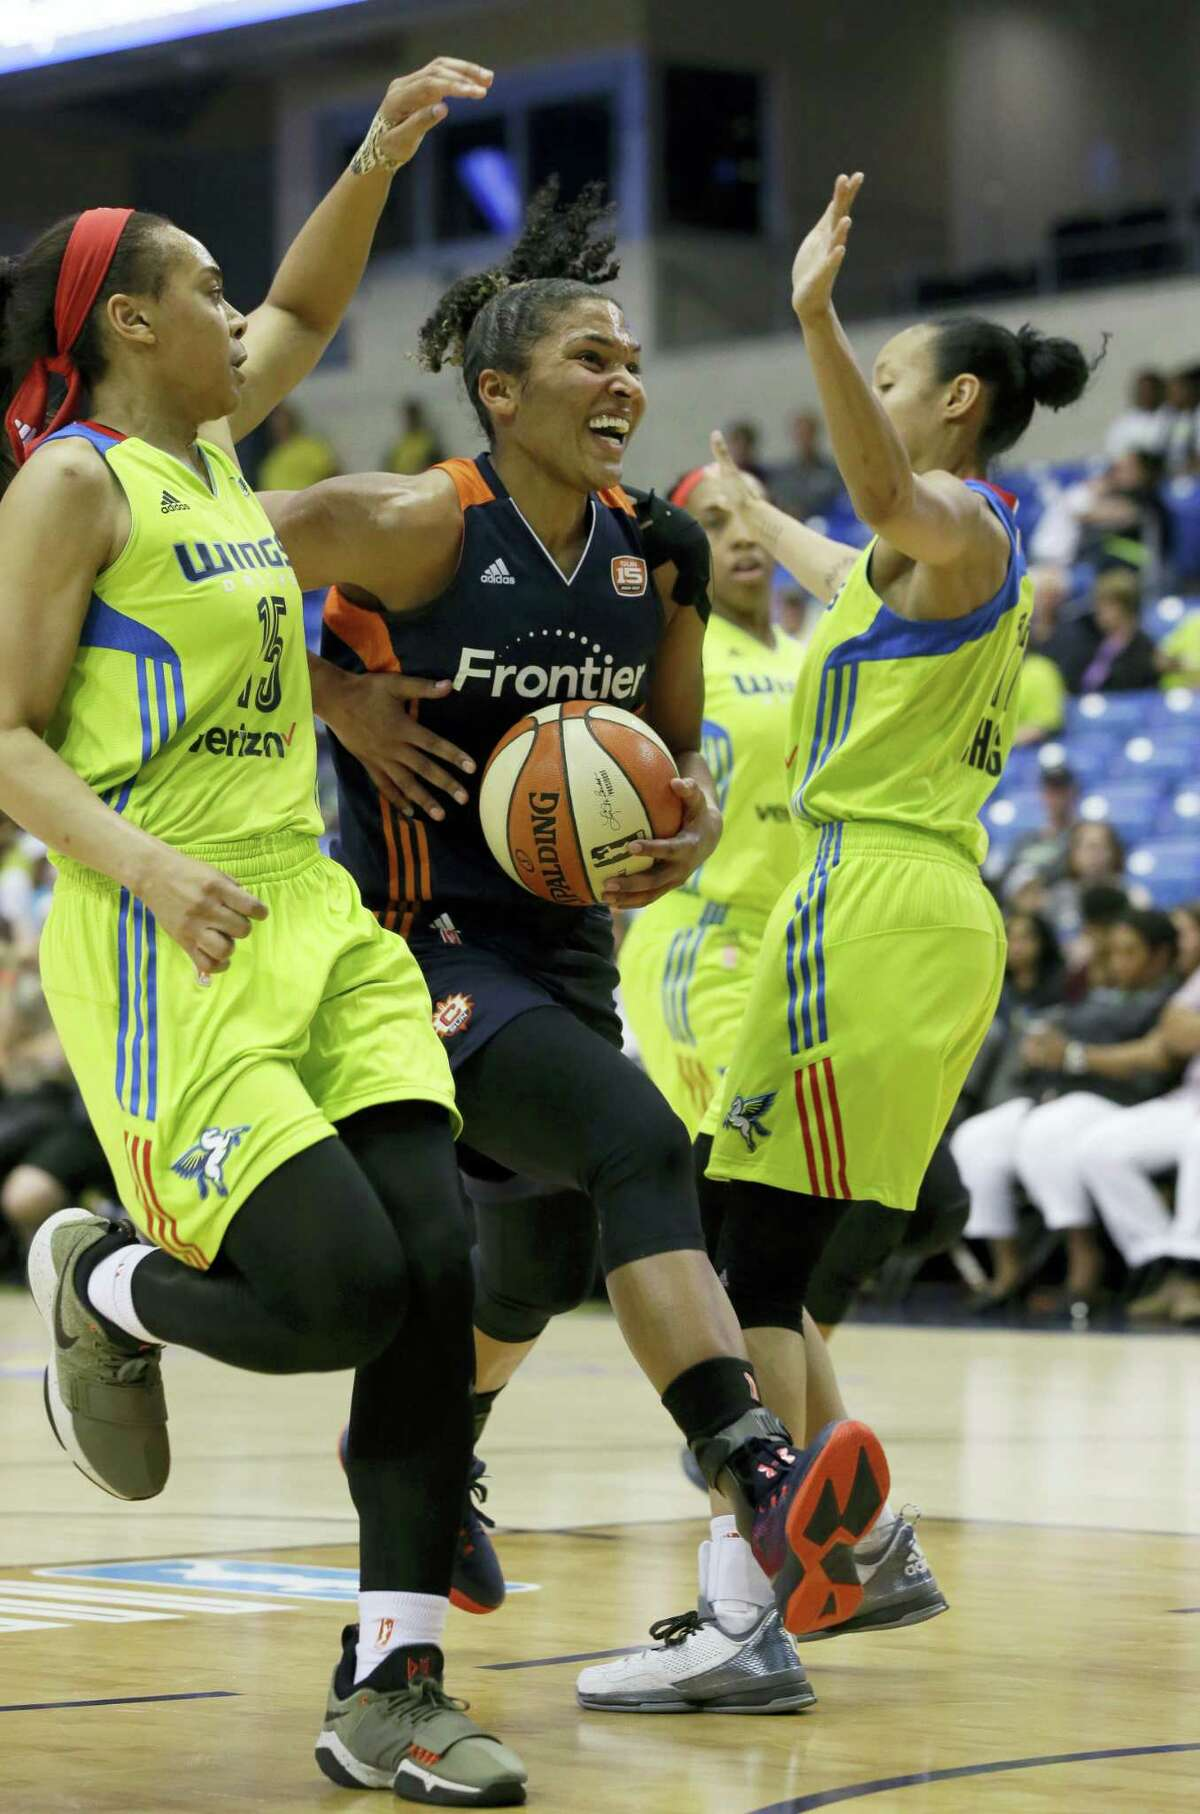 Connecticut Sun forward Alyssa Thomas, center, tries to drive against Dallas Wings defenders Allisha Gray (15) and Saniya Chong (12) during the second half of a WNBA basketball game in Arlington, Texas on June 25, 2017.